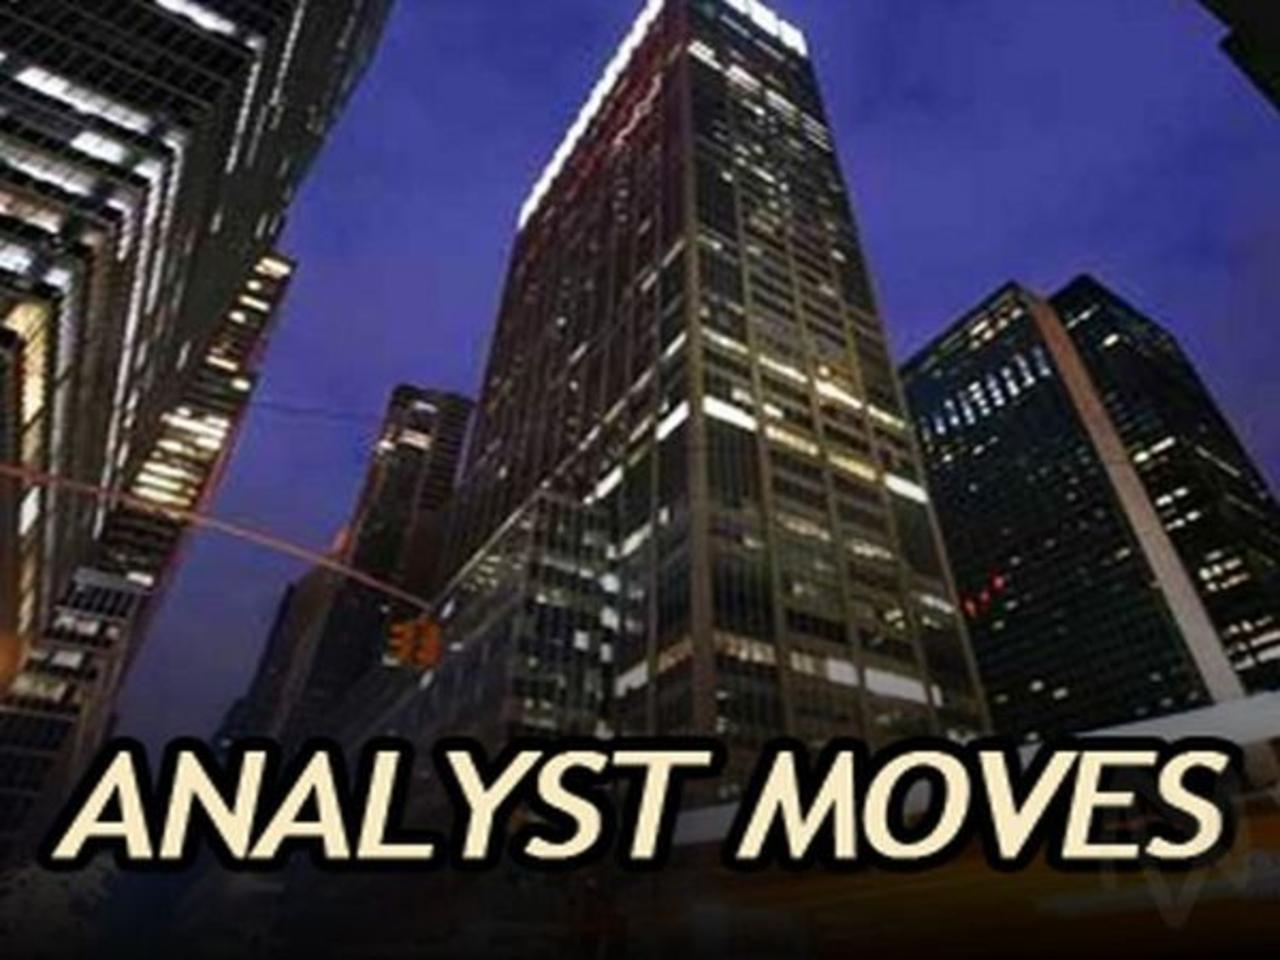 S&P 500 Analyst Moves: TECH